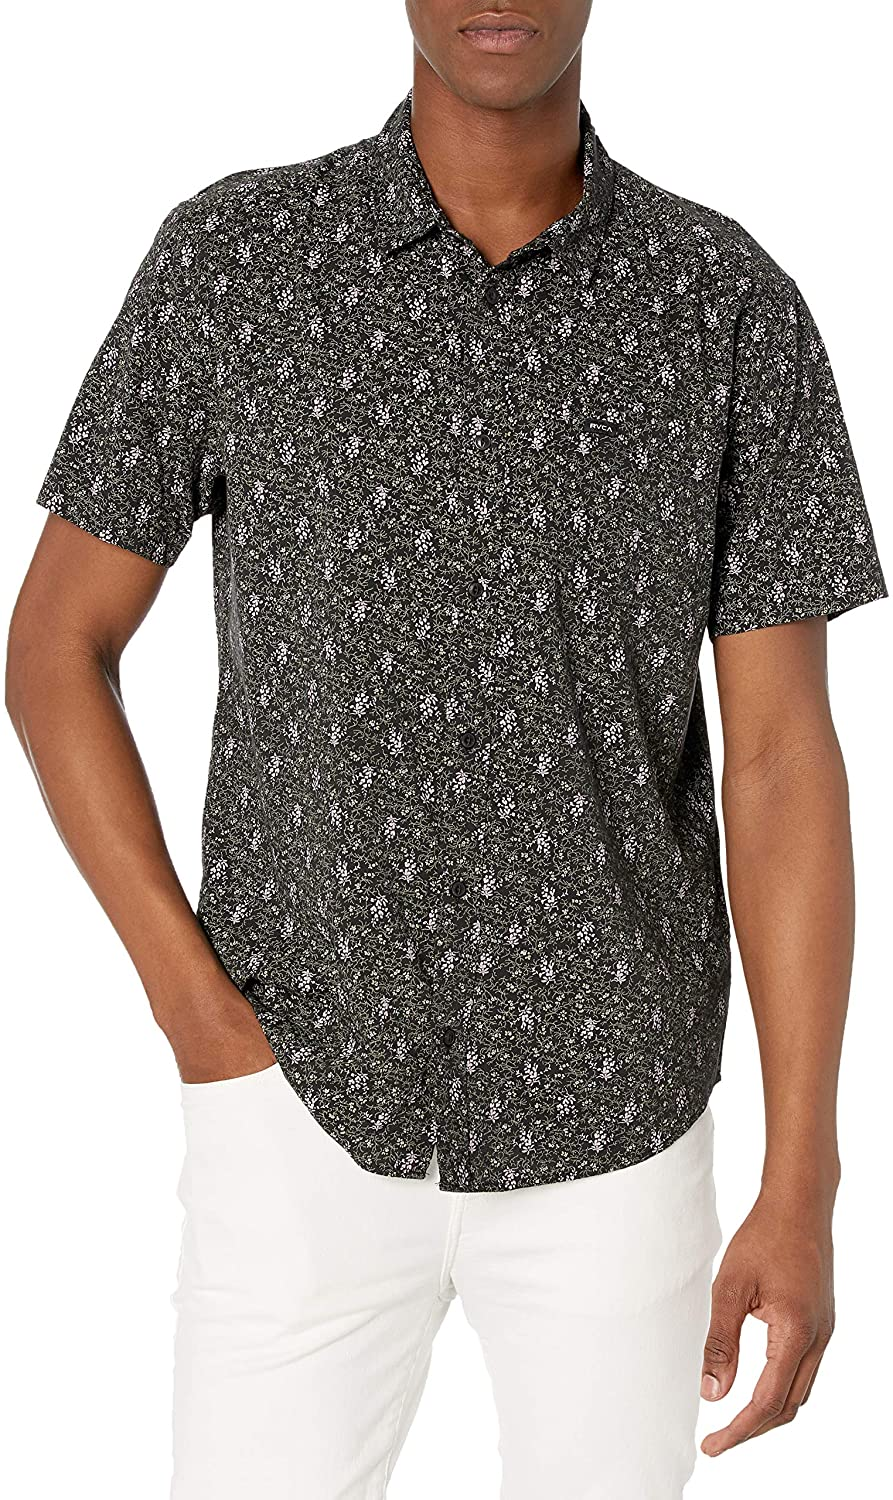 RVCA Monkberry Floral Short Sleeve Shirt